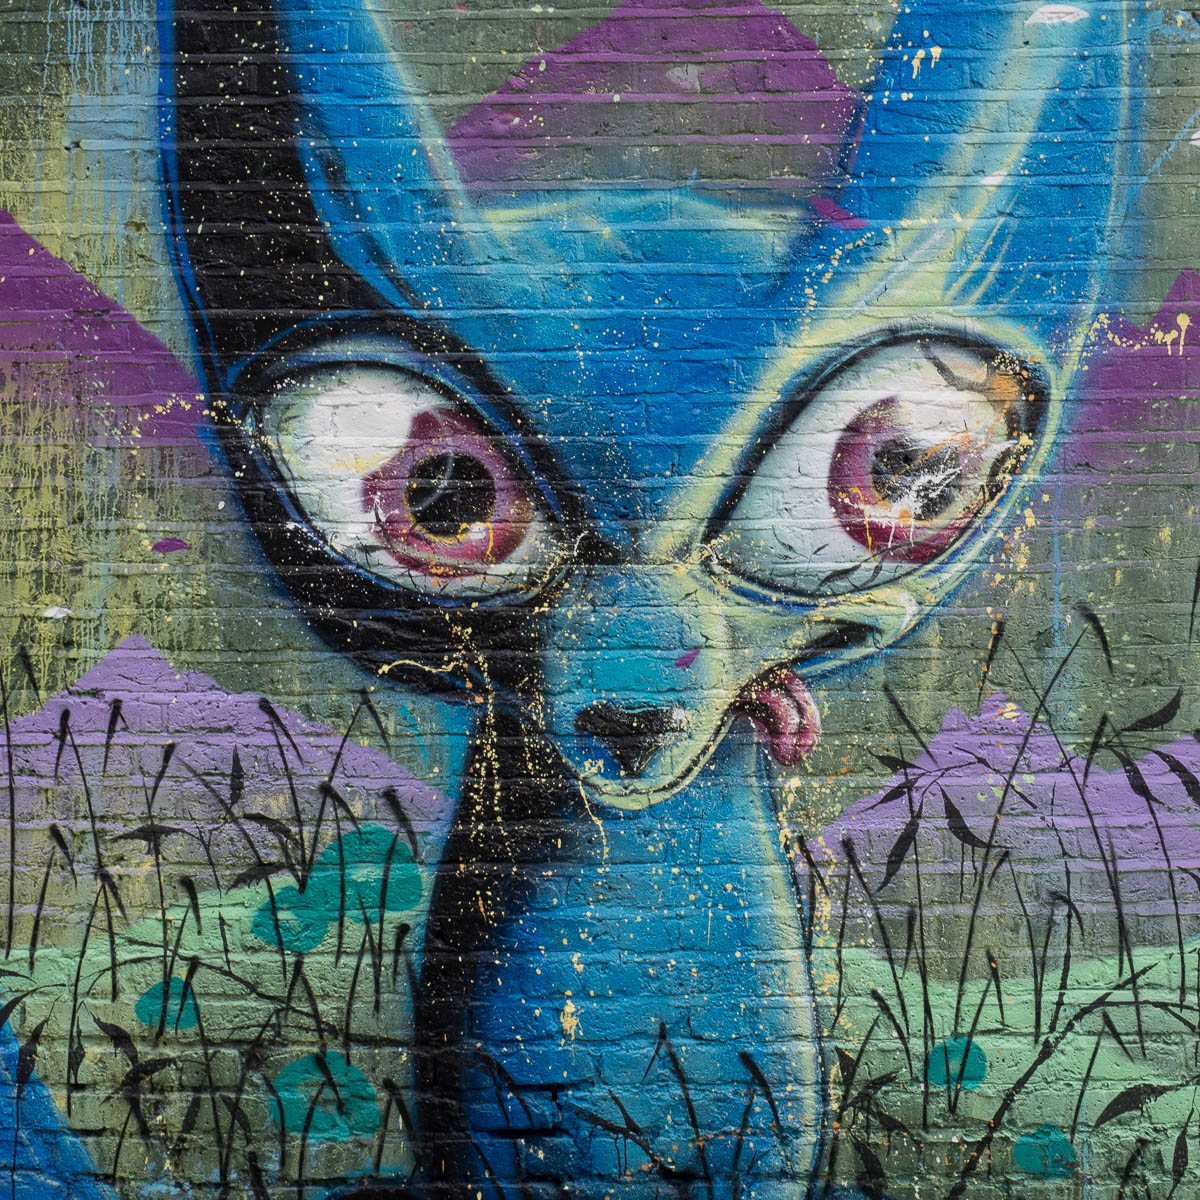 London camden himbad graffiti